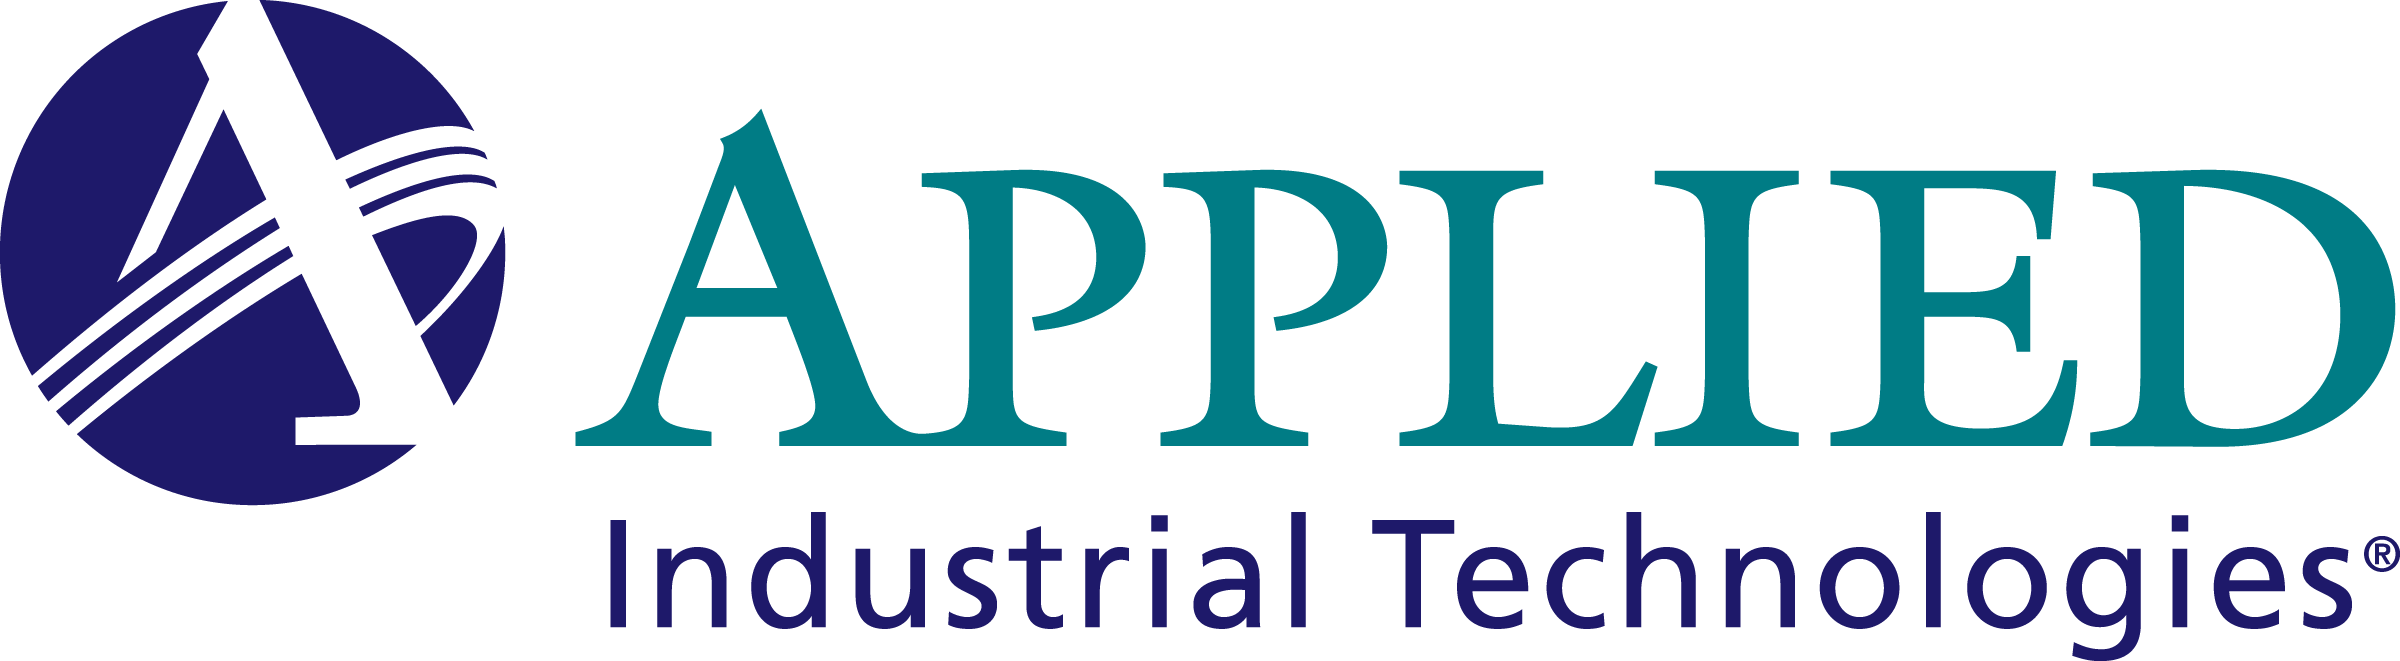 Kisspng Applied Industrial Technologies Inc Industry App Industrial Technology 5ae253d0b0adf1.6249581215247820327237